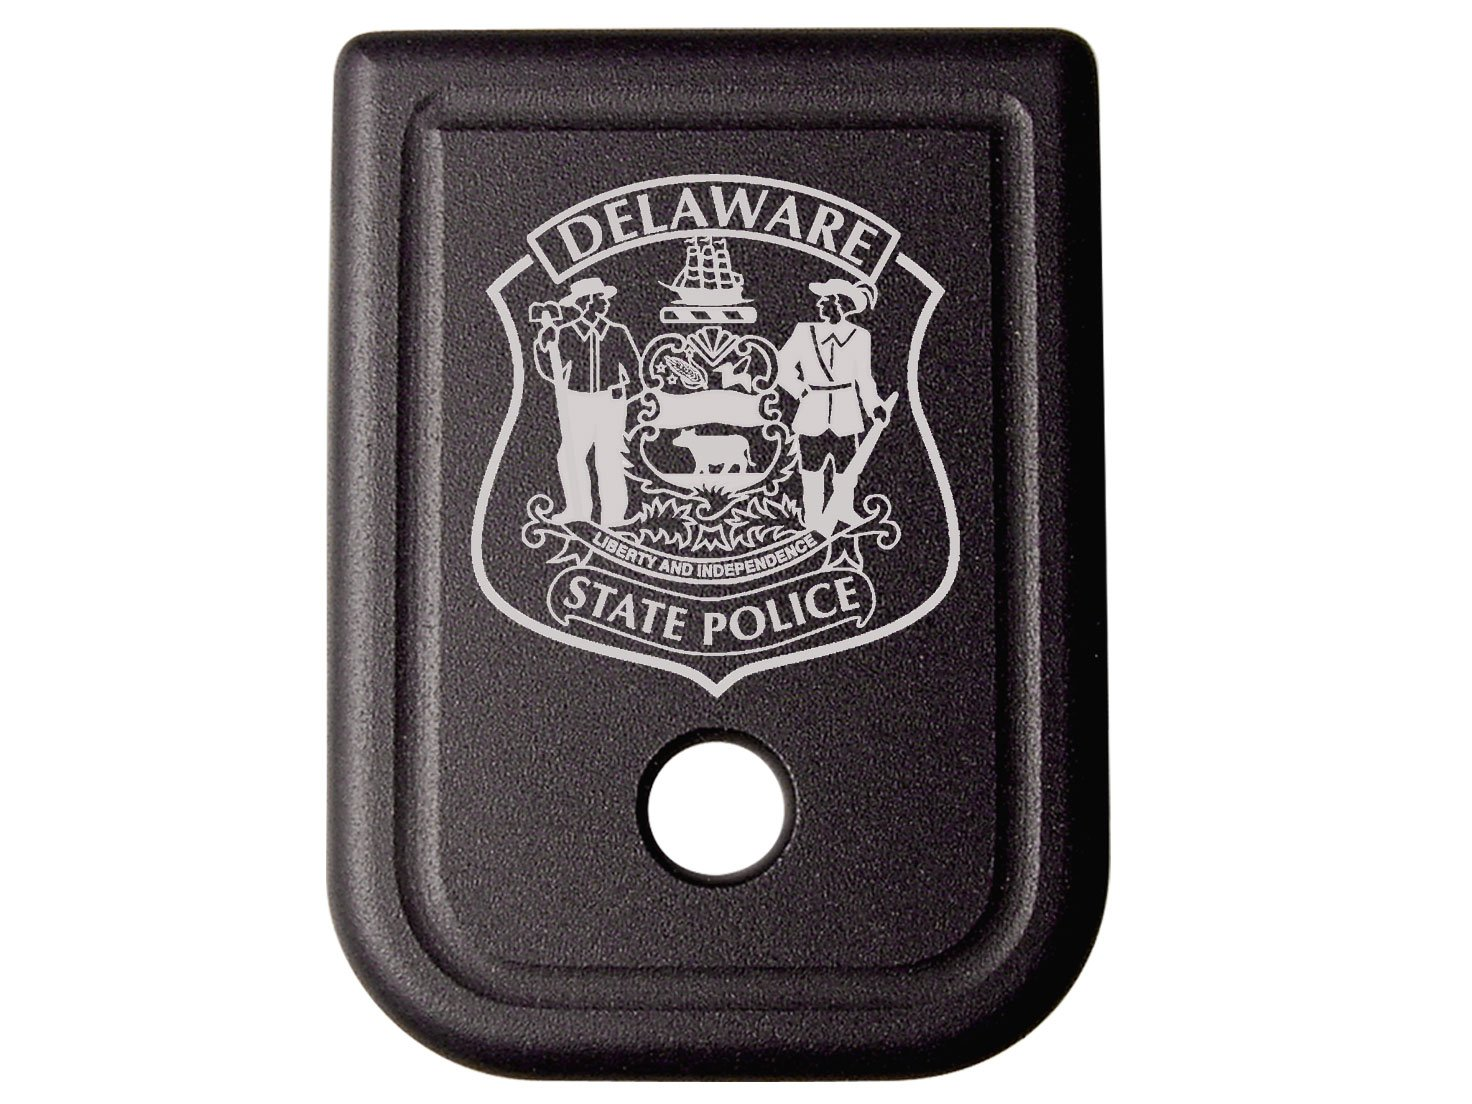 все цены на  Police State Delaware Floor Base Plate for Glock 9mm .357 .40 .45GAP  онлайн